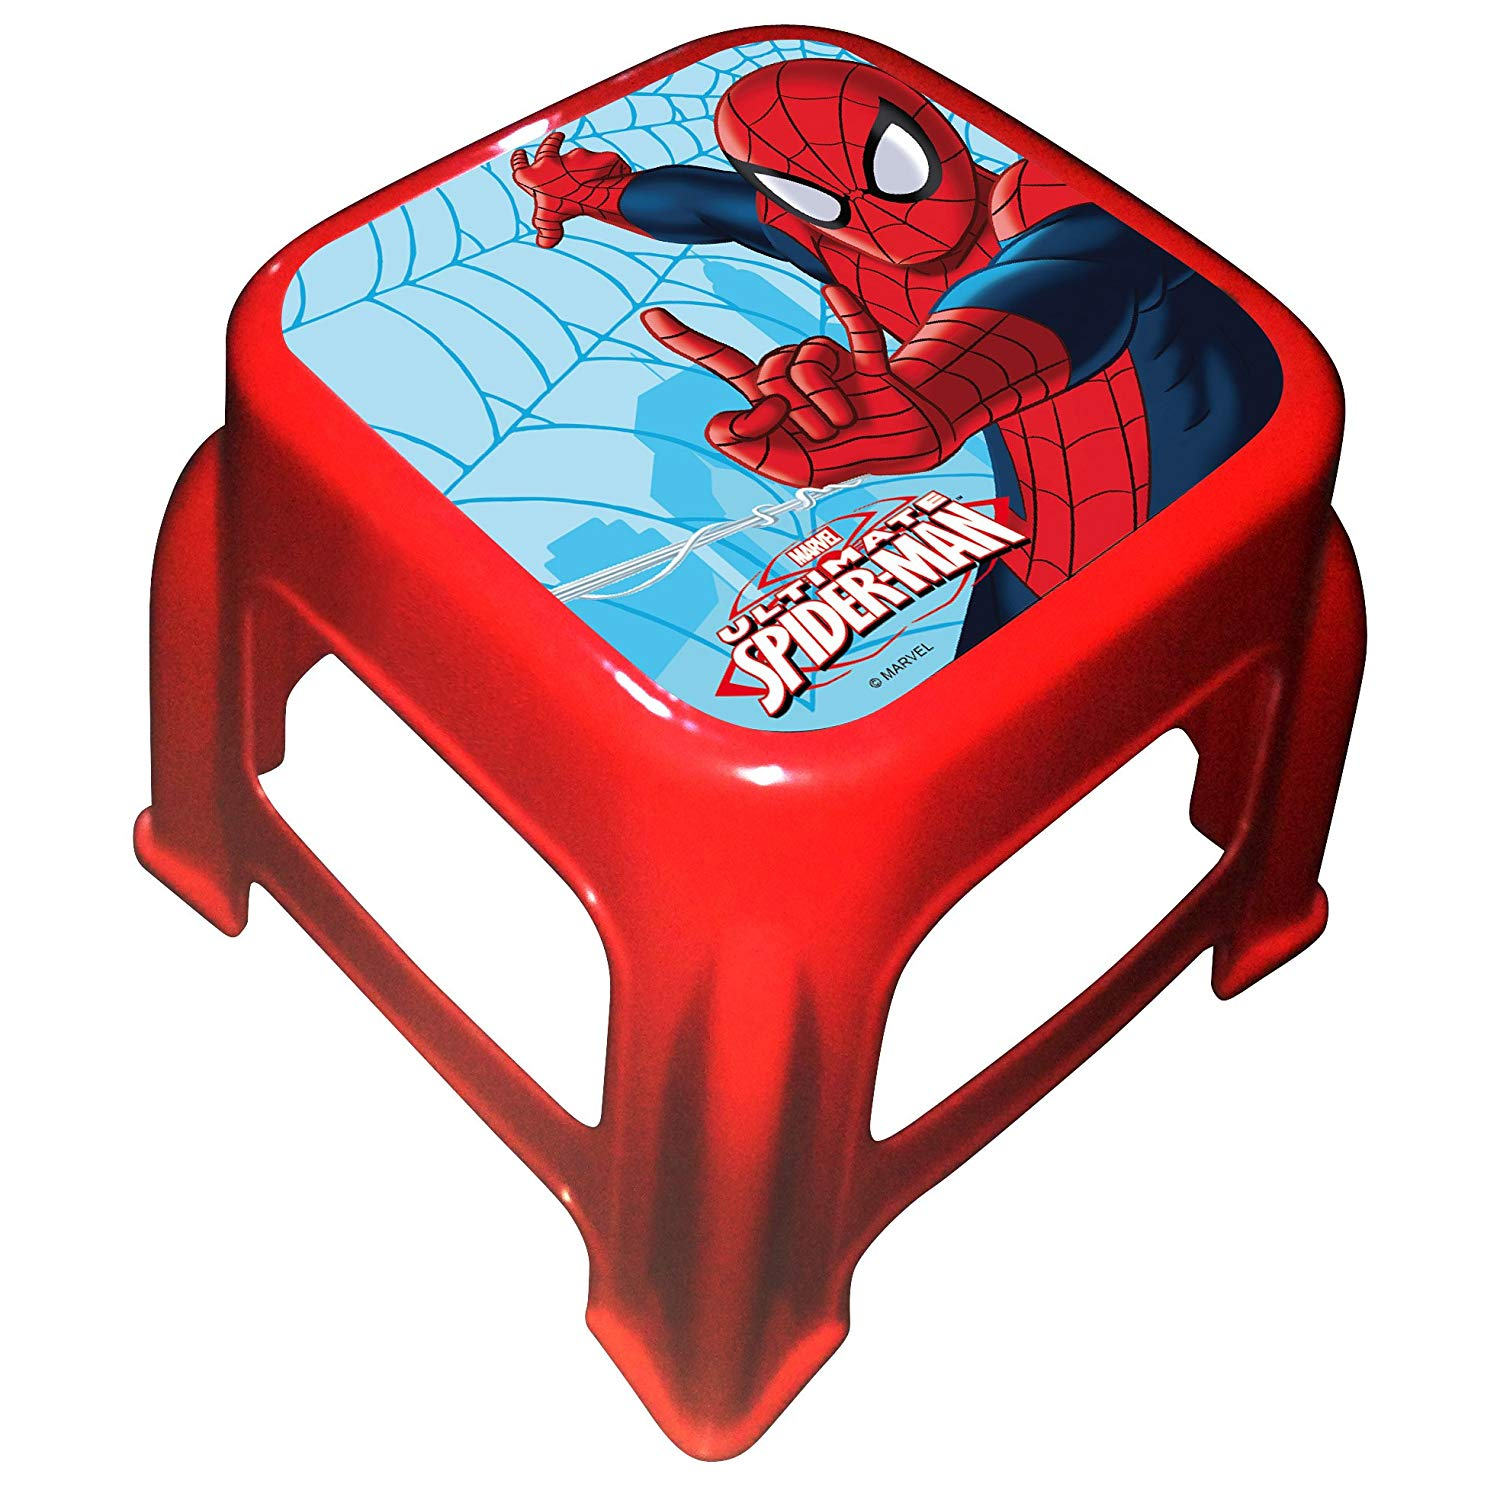 Arditex Spiderman-Pp Stool, Red, Medium